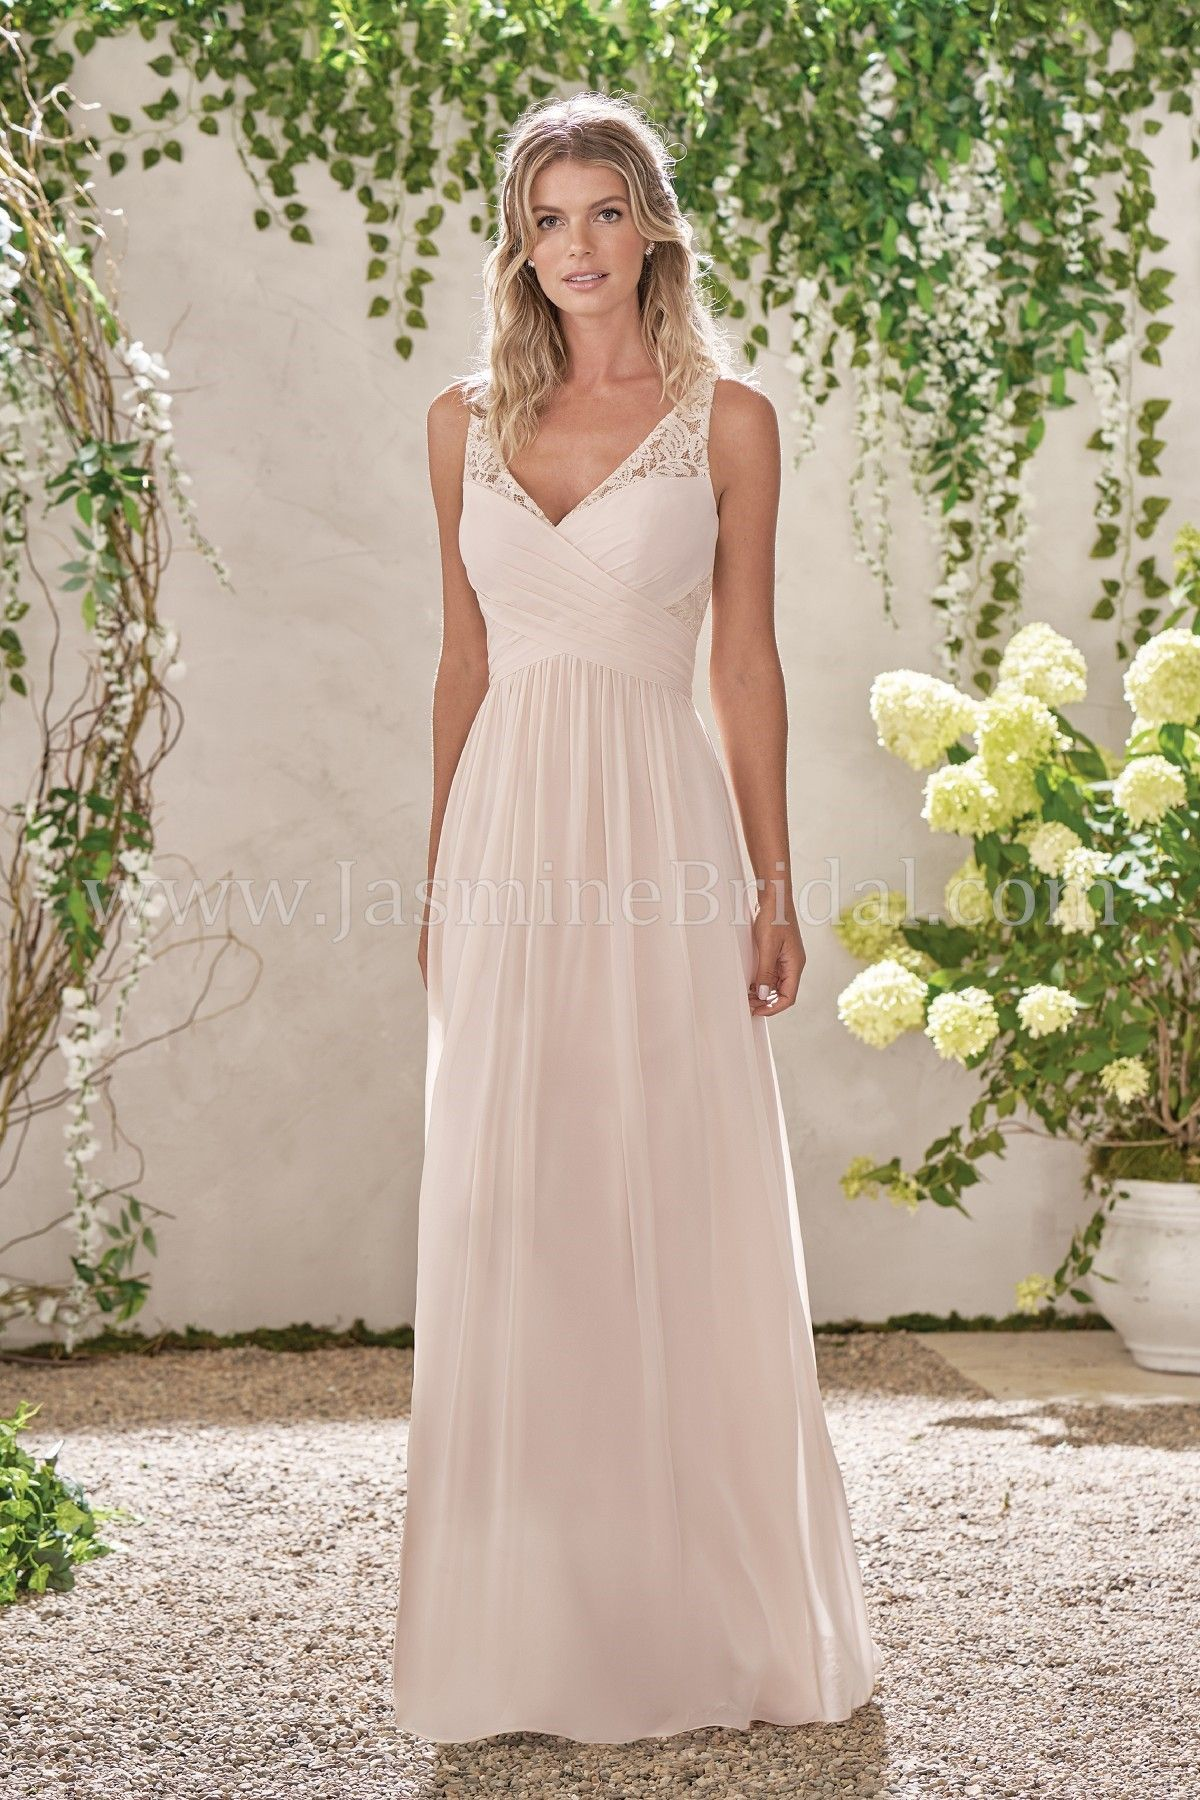 45d28dfced Jasmine Bridal - B2 Style B193001 in Poly Chiffon Lace